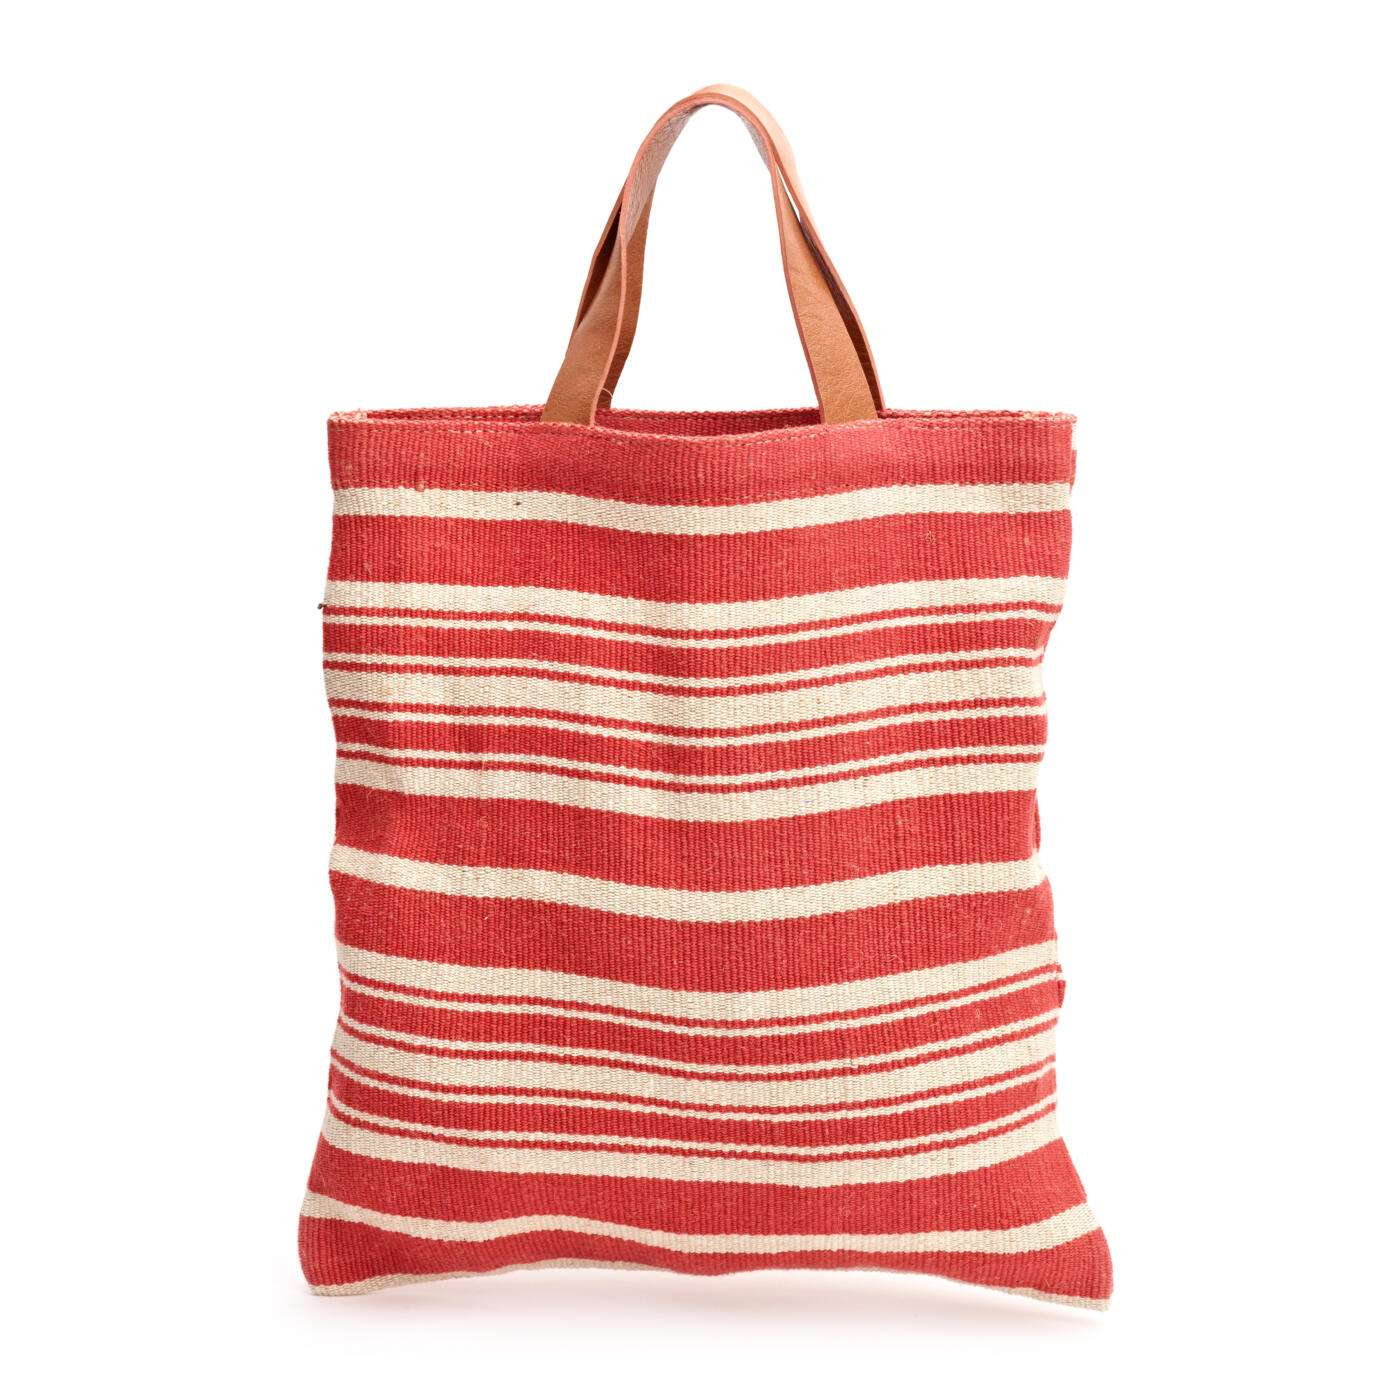 pmg_tote_gusset_46